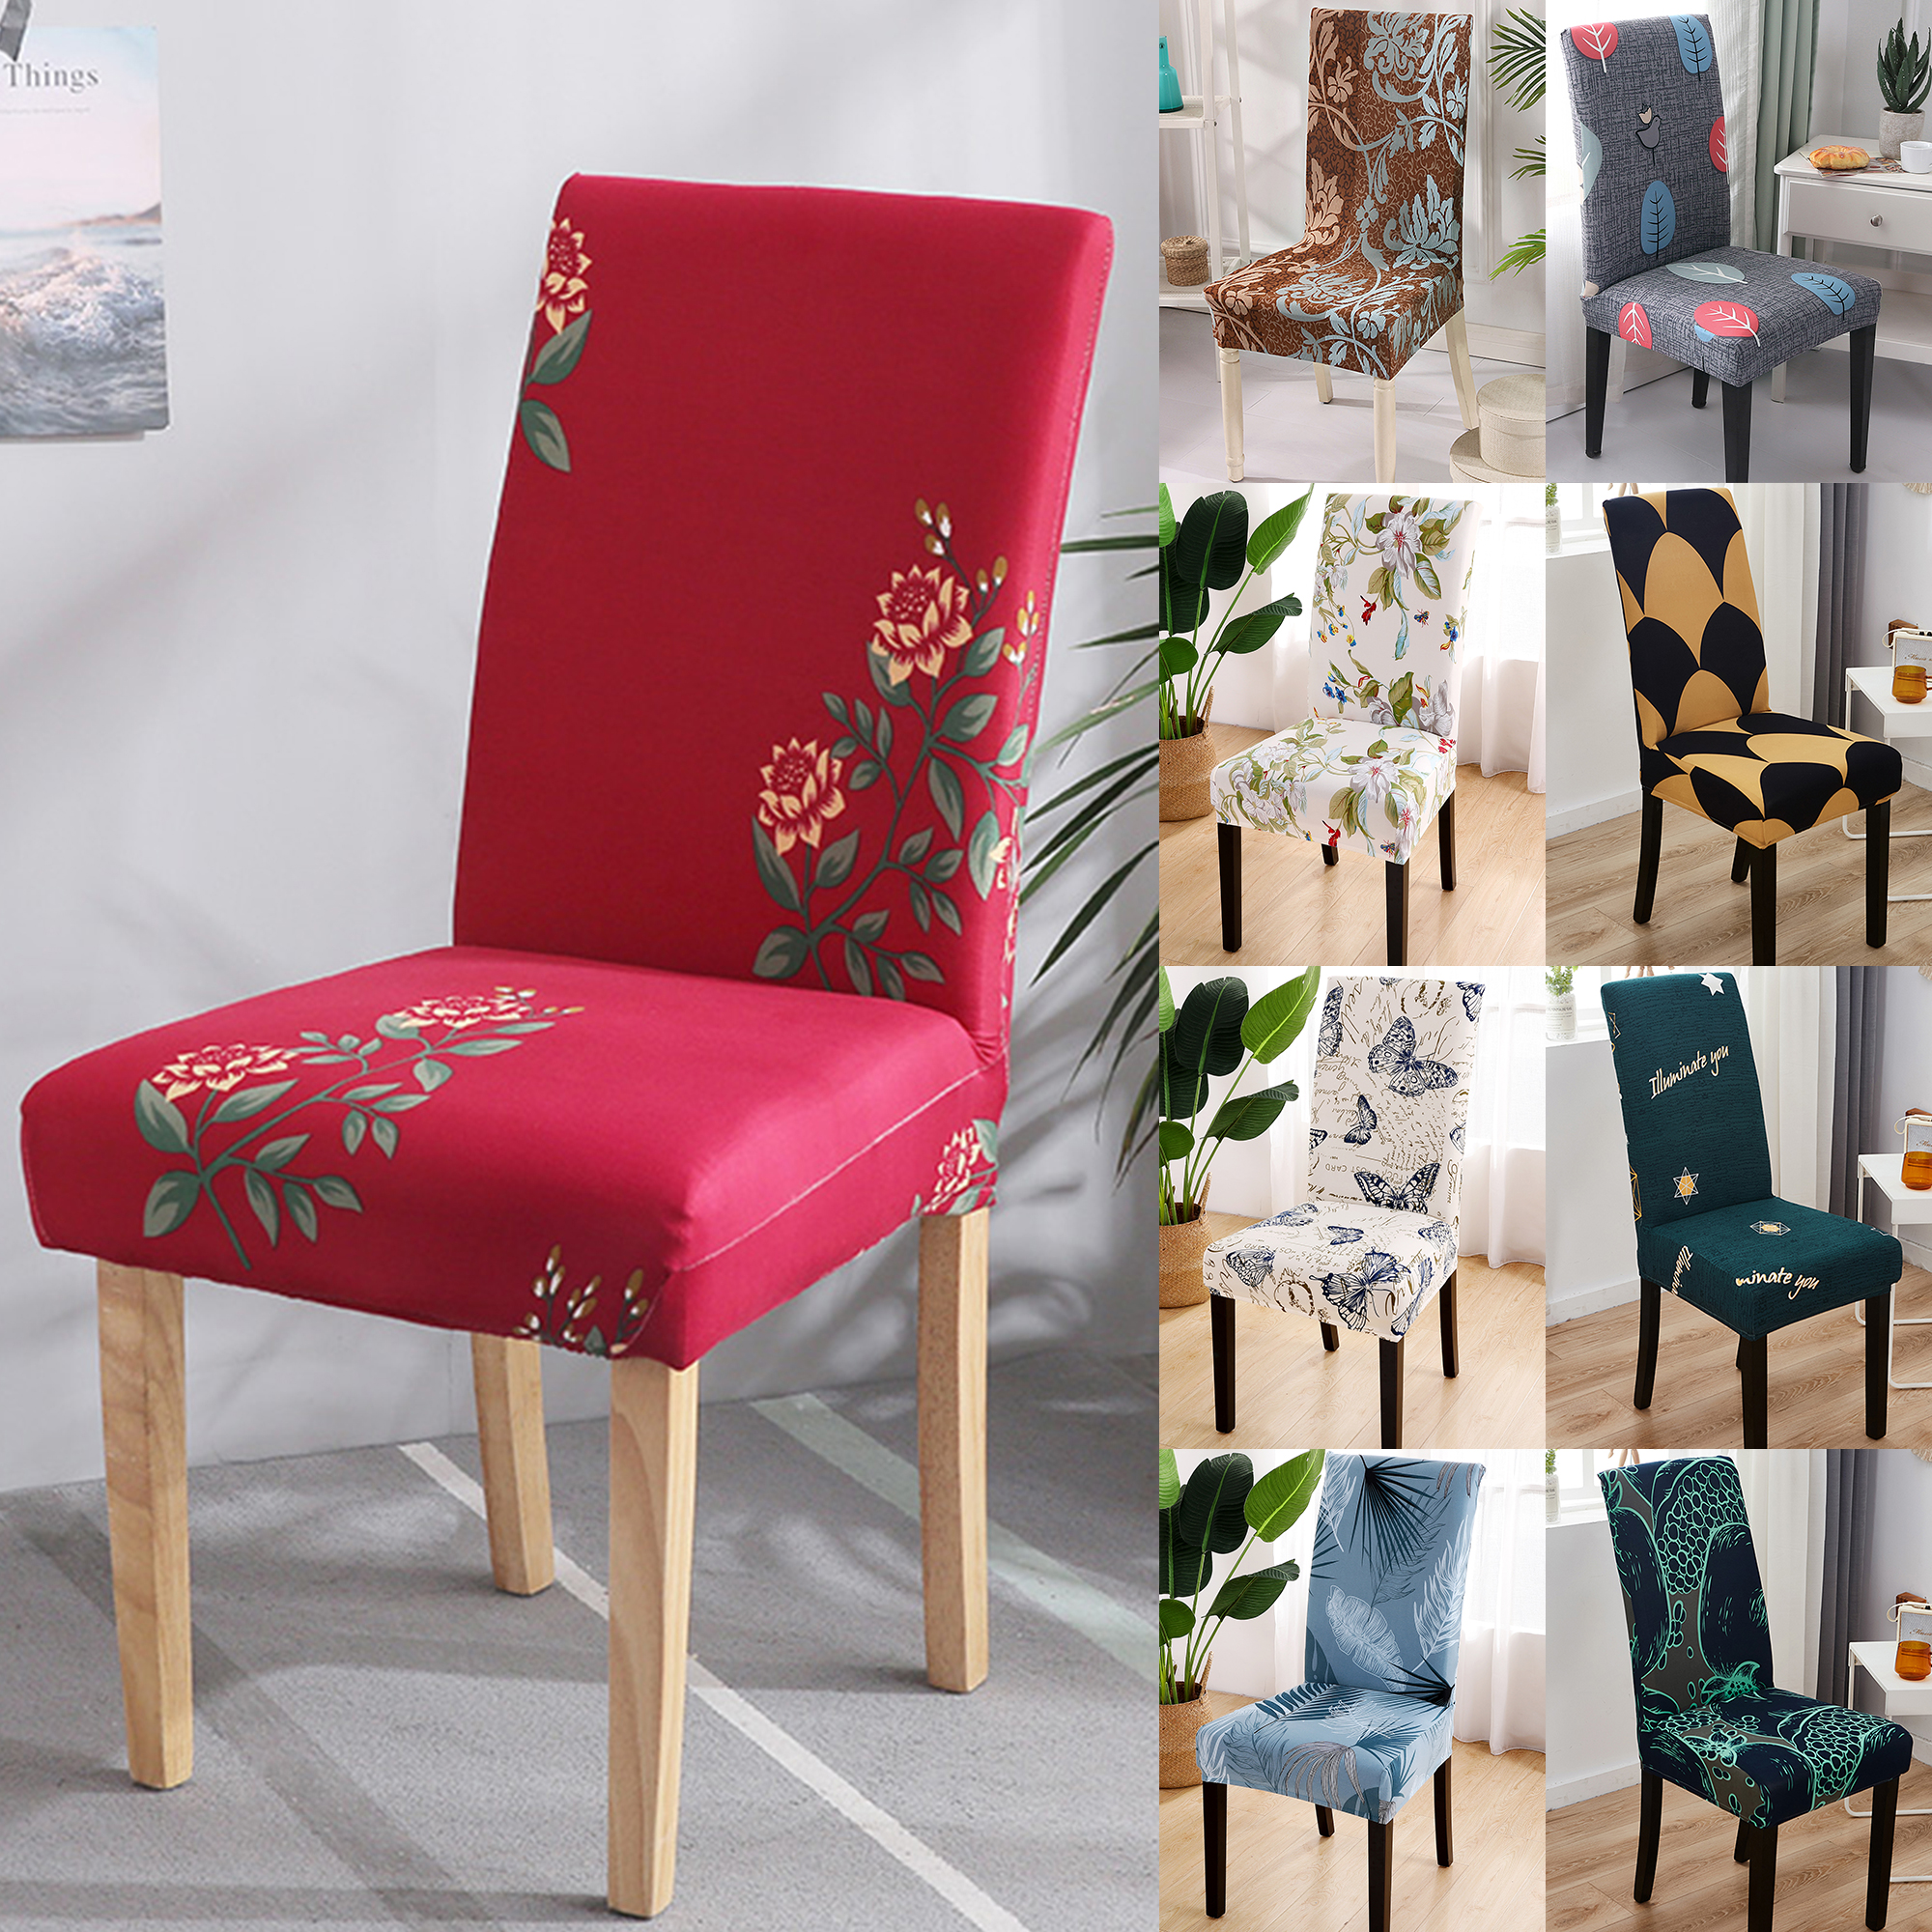 2//4//6//8Pcs Stretch Removable Dining Chair Cover Seat Chair Slipcover Protector